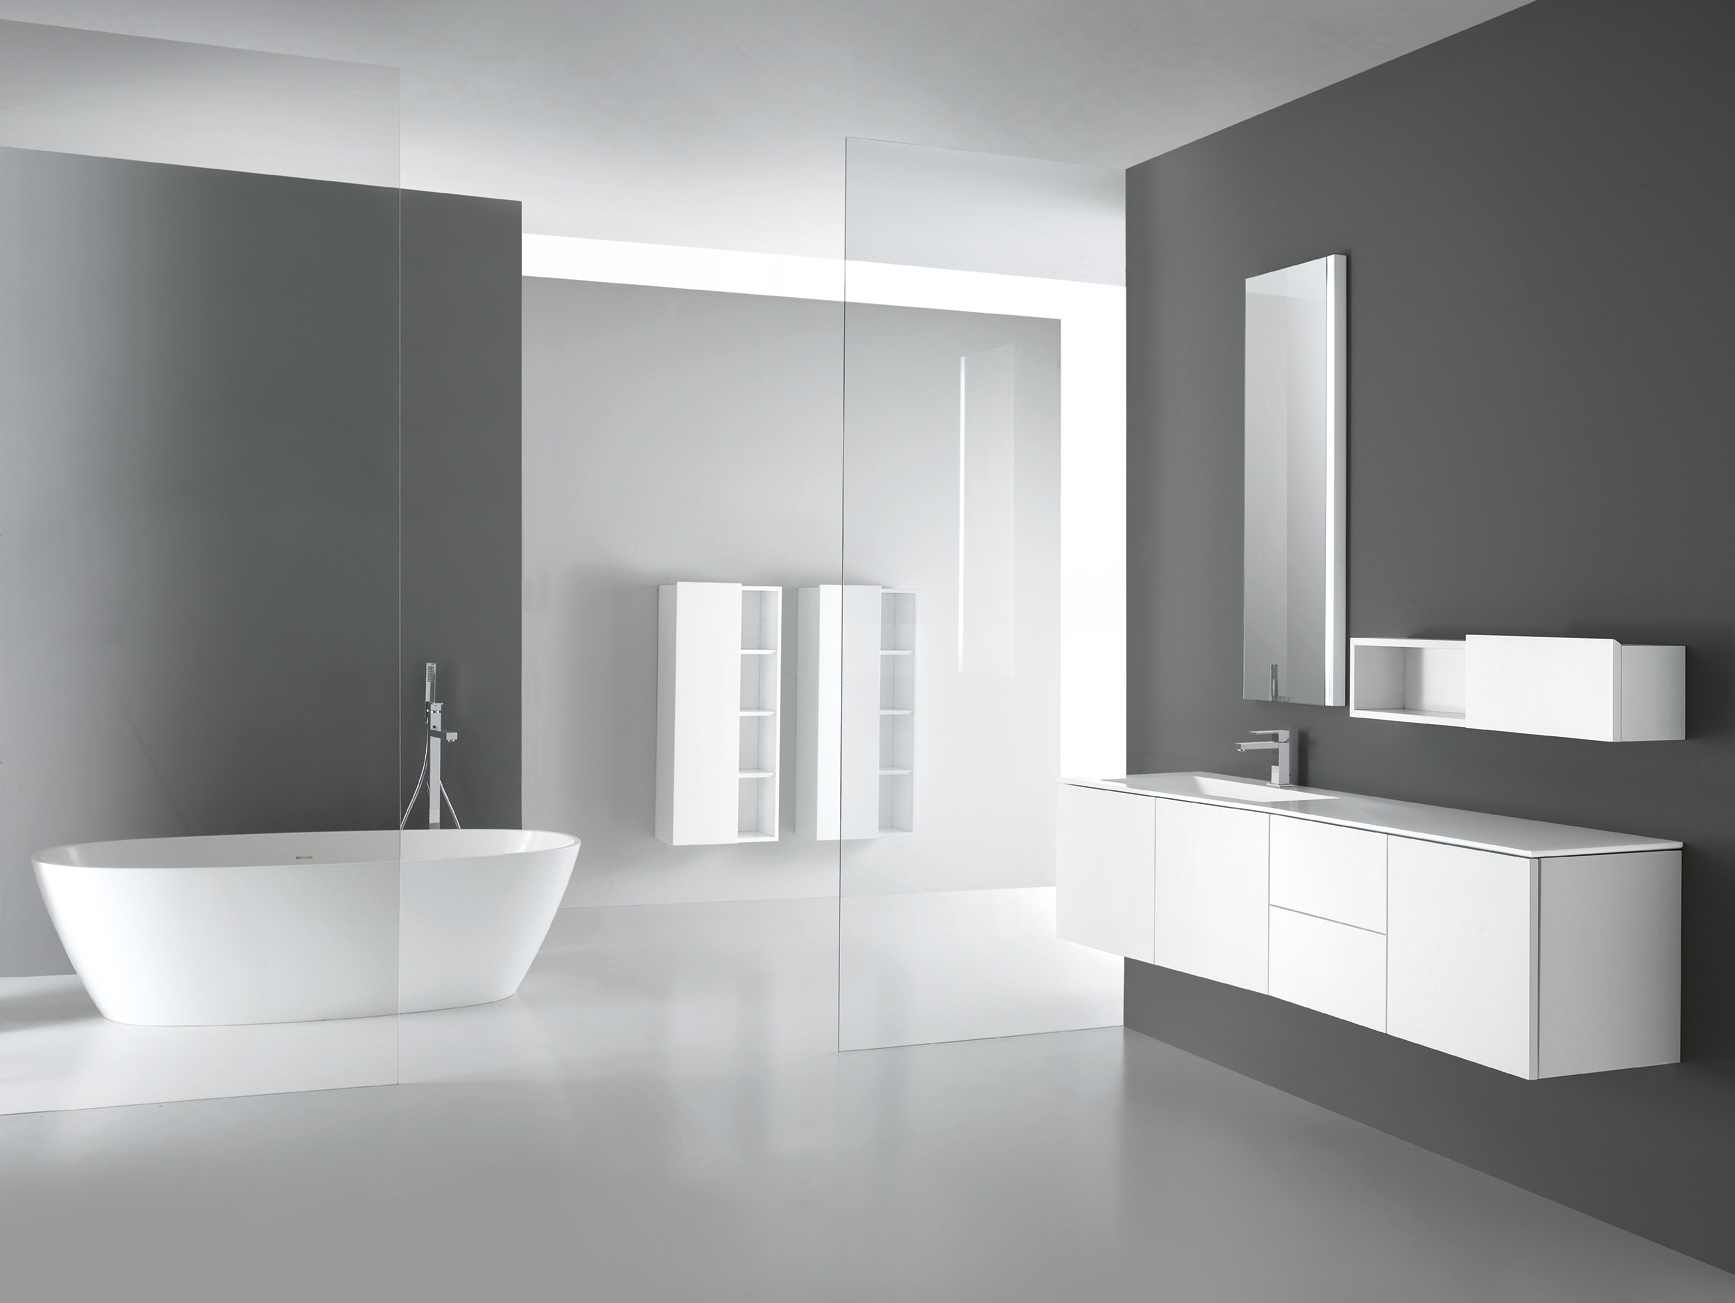 Italian Bathroom Design Sanitair Camee Bvba